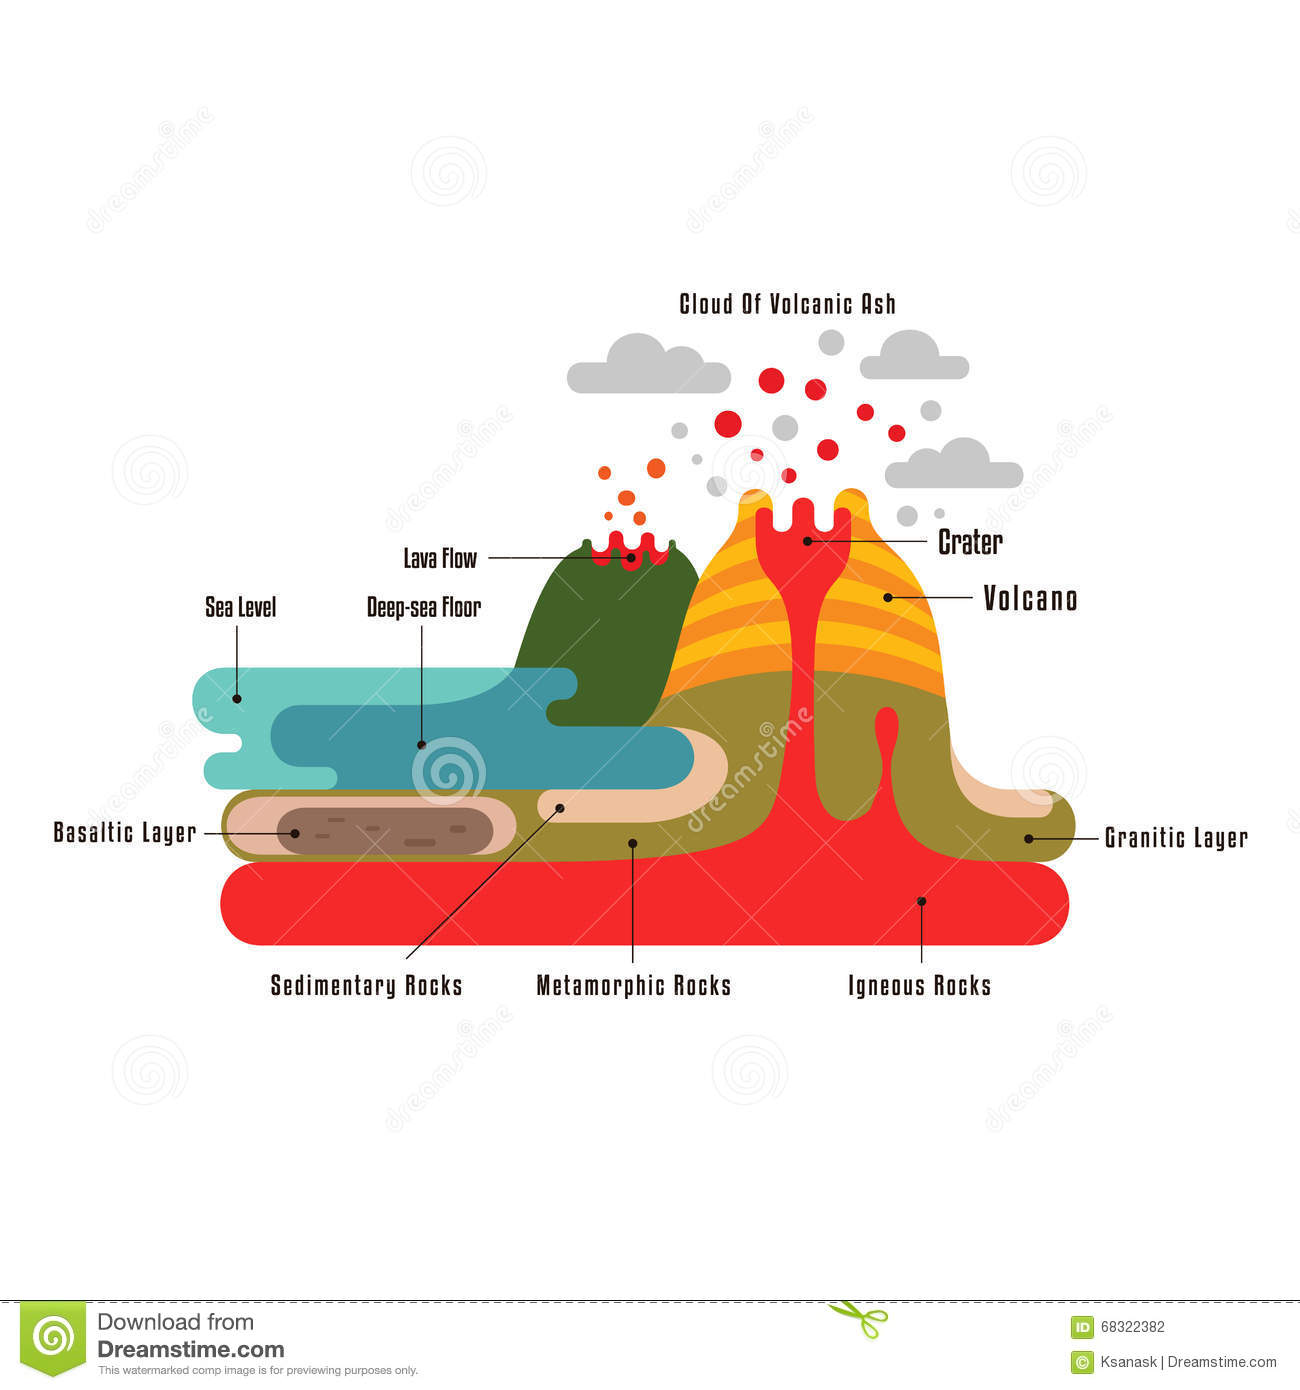 earth crust section infographic  flat style educational landscape  volcanos  and lava  useful map elements  vector small location